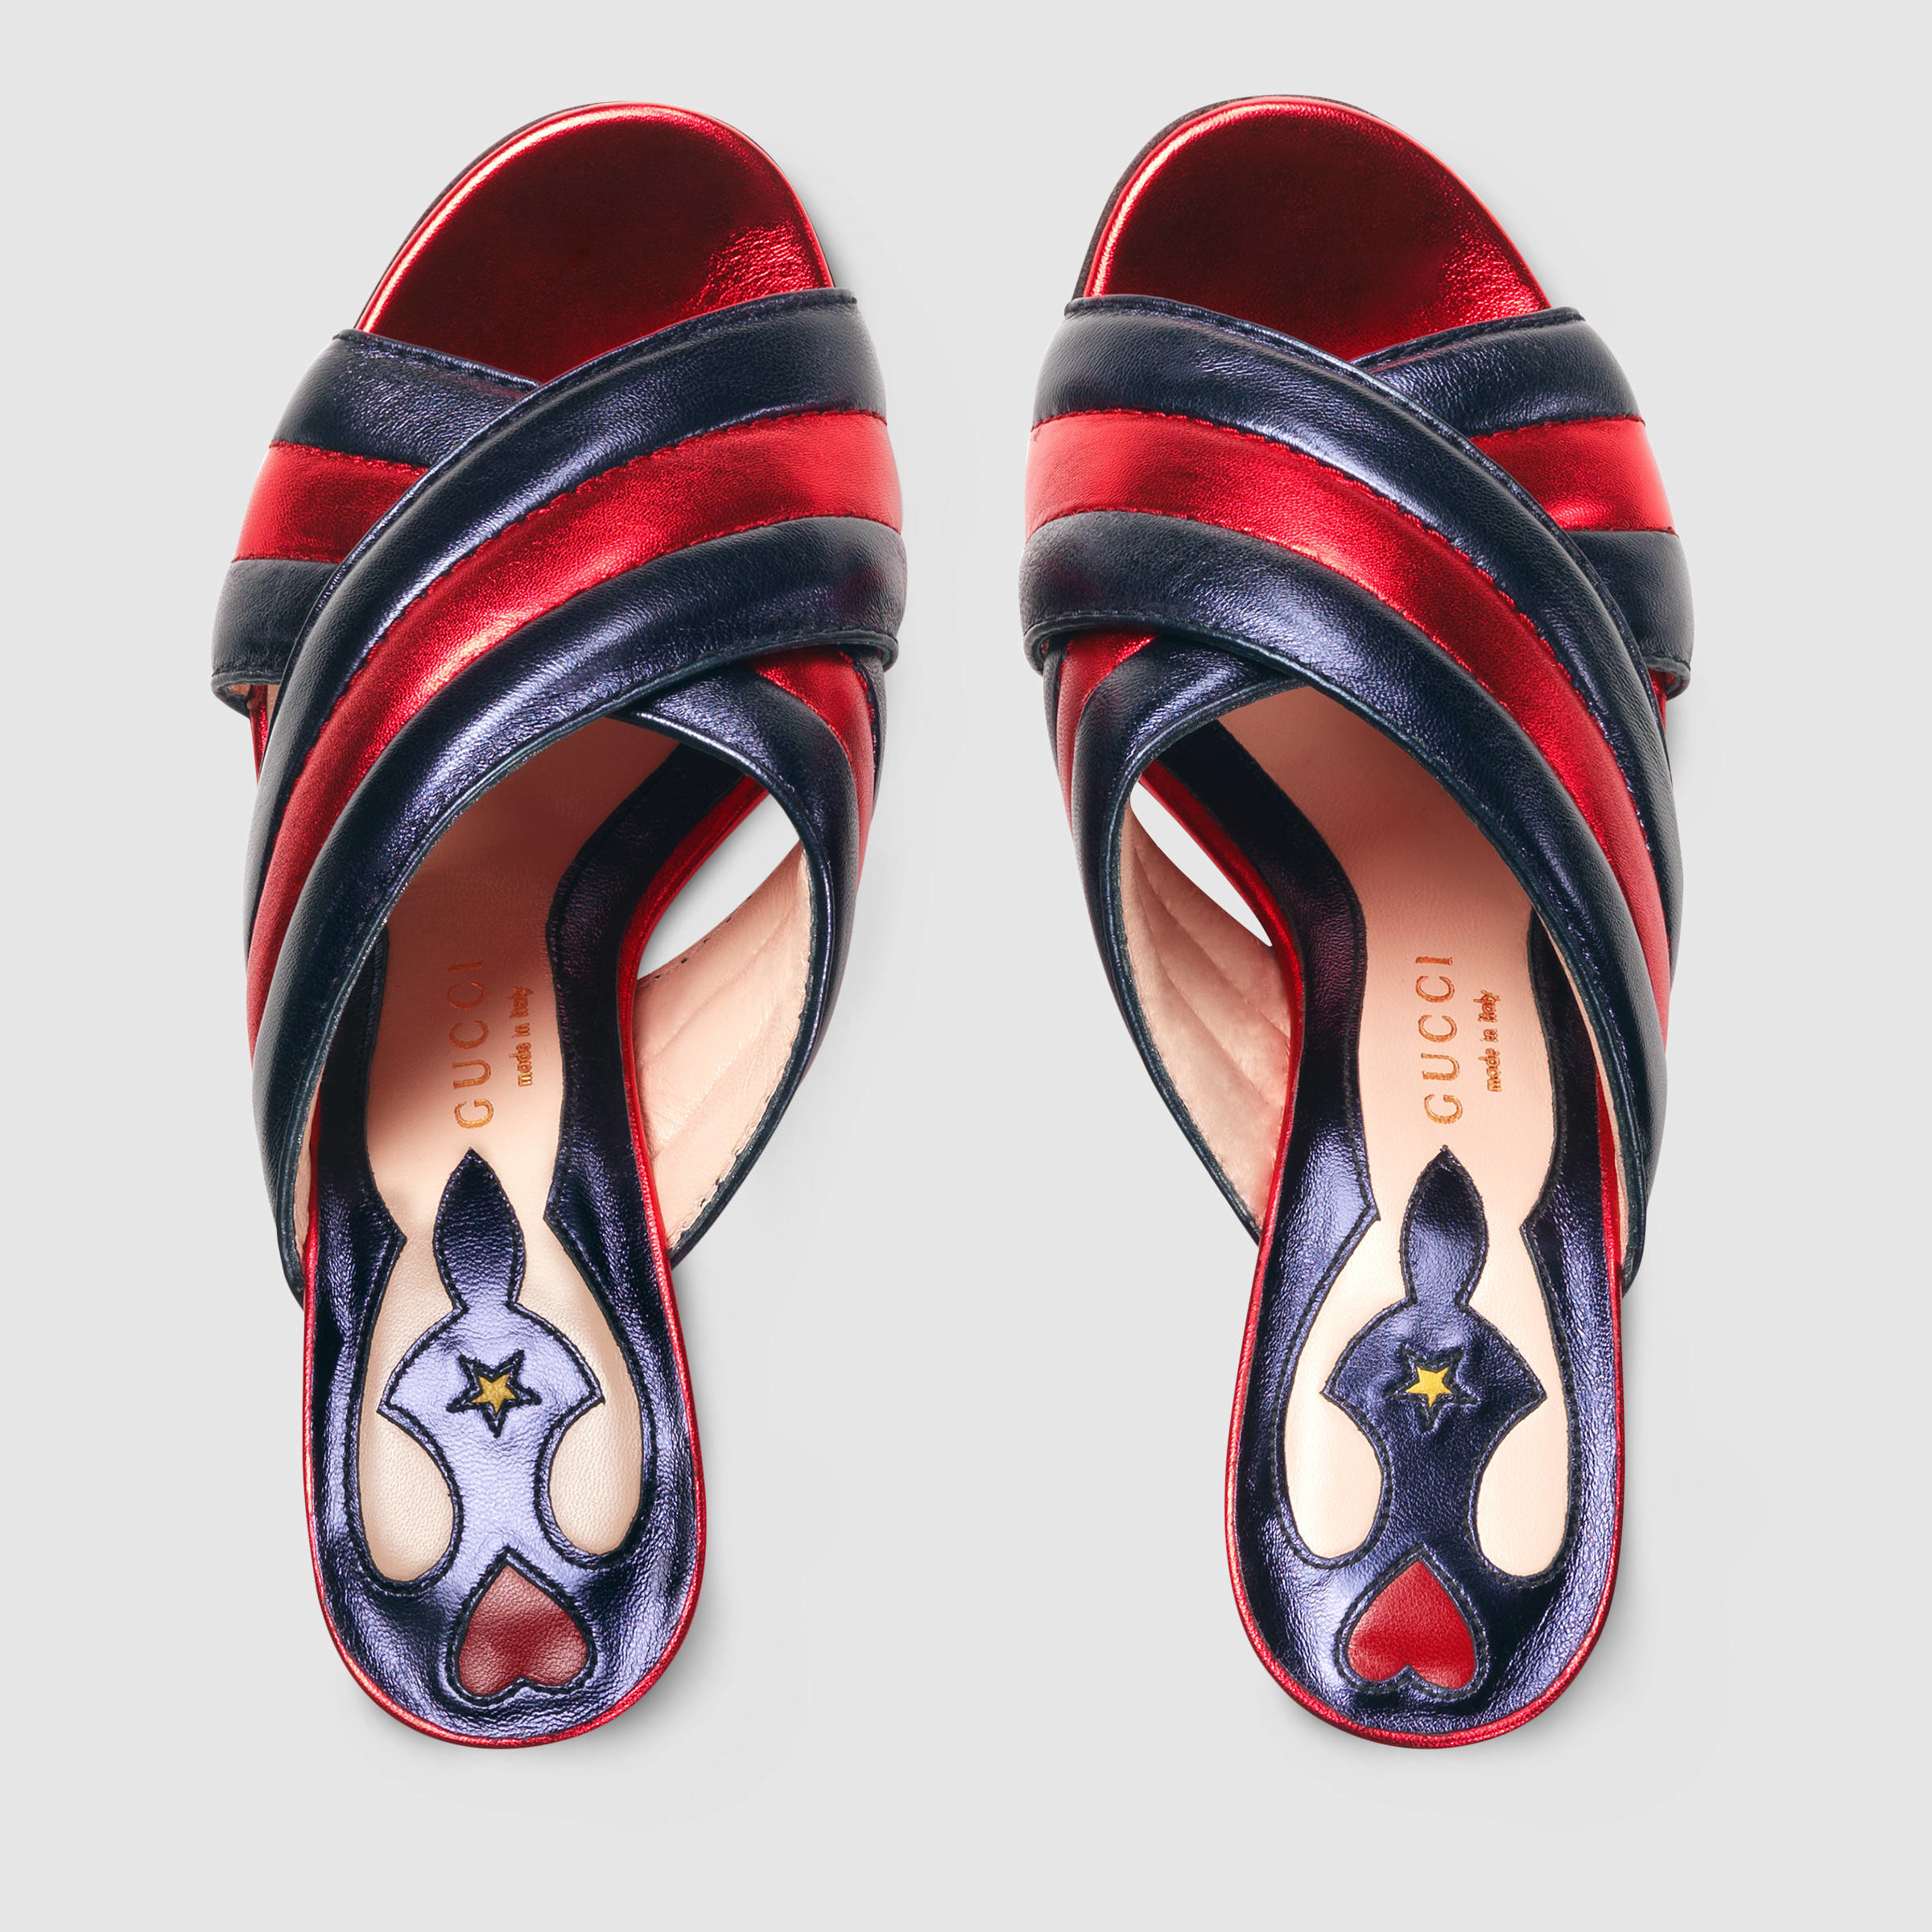 06ec80609f2 Gucci Metallic Leather Crossover Sandal in Blue - Lyst